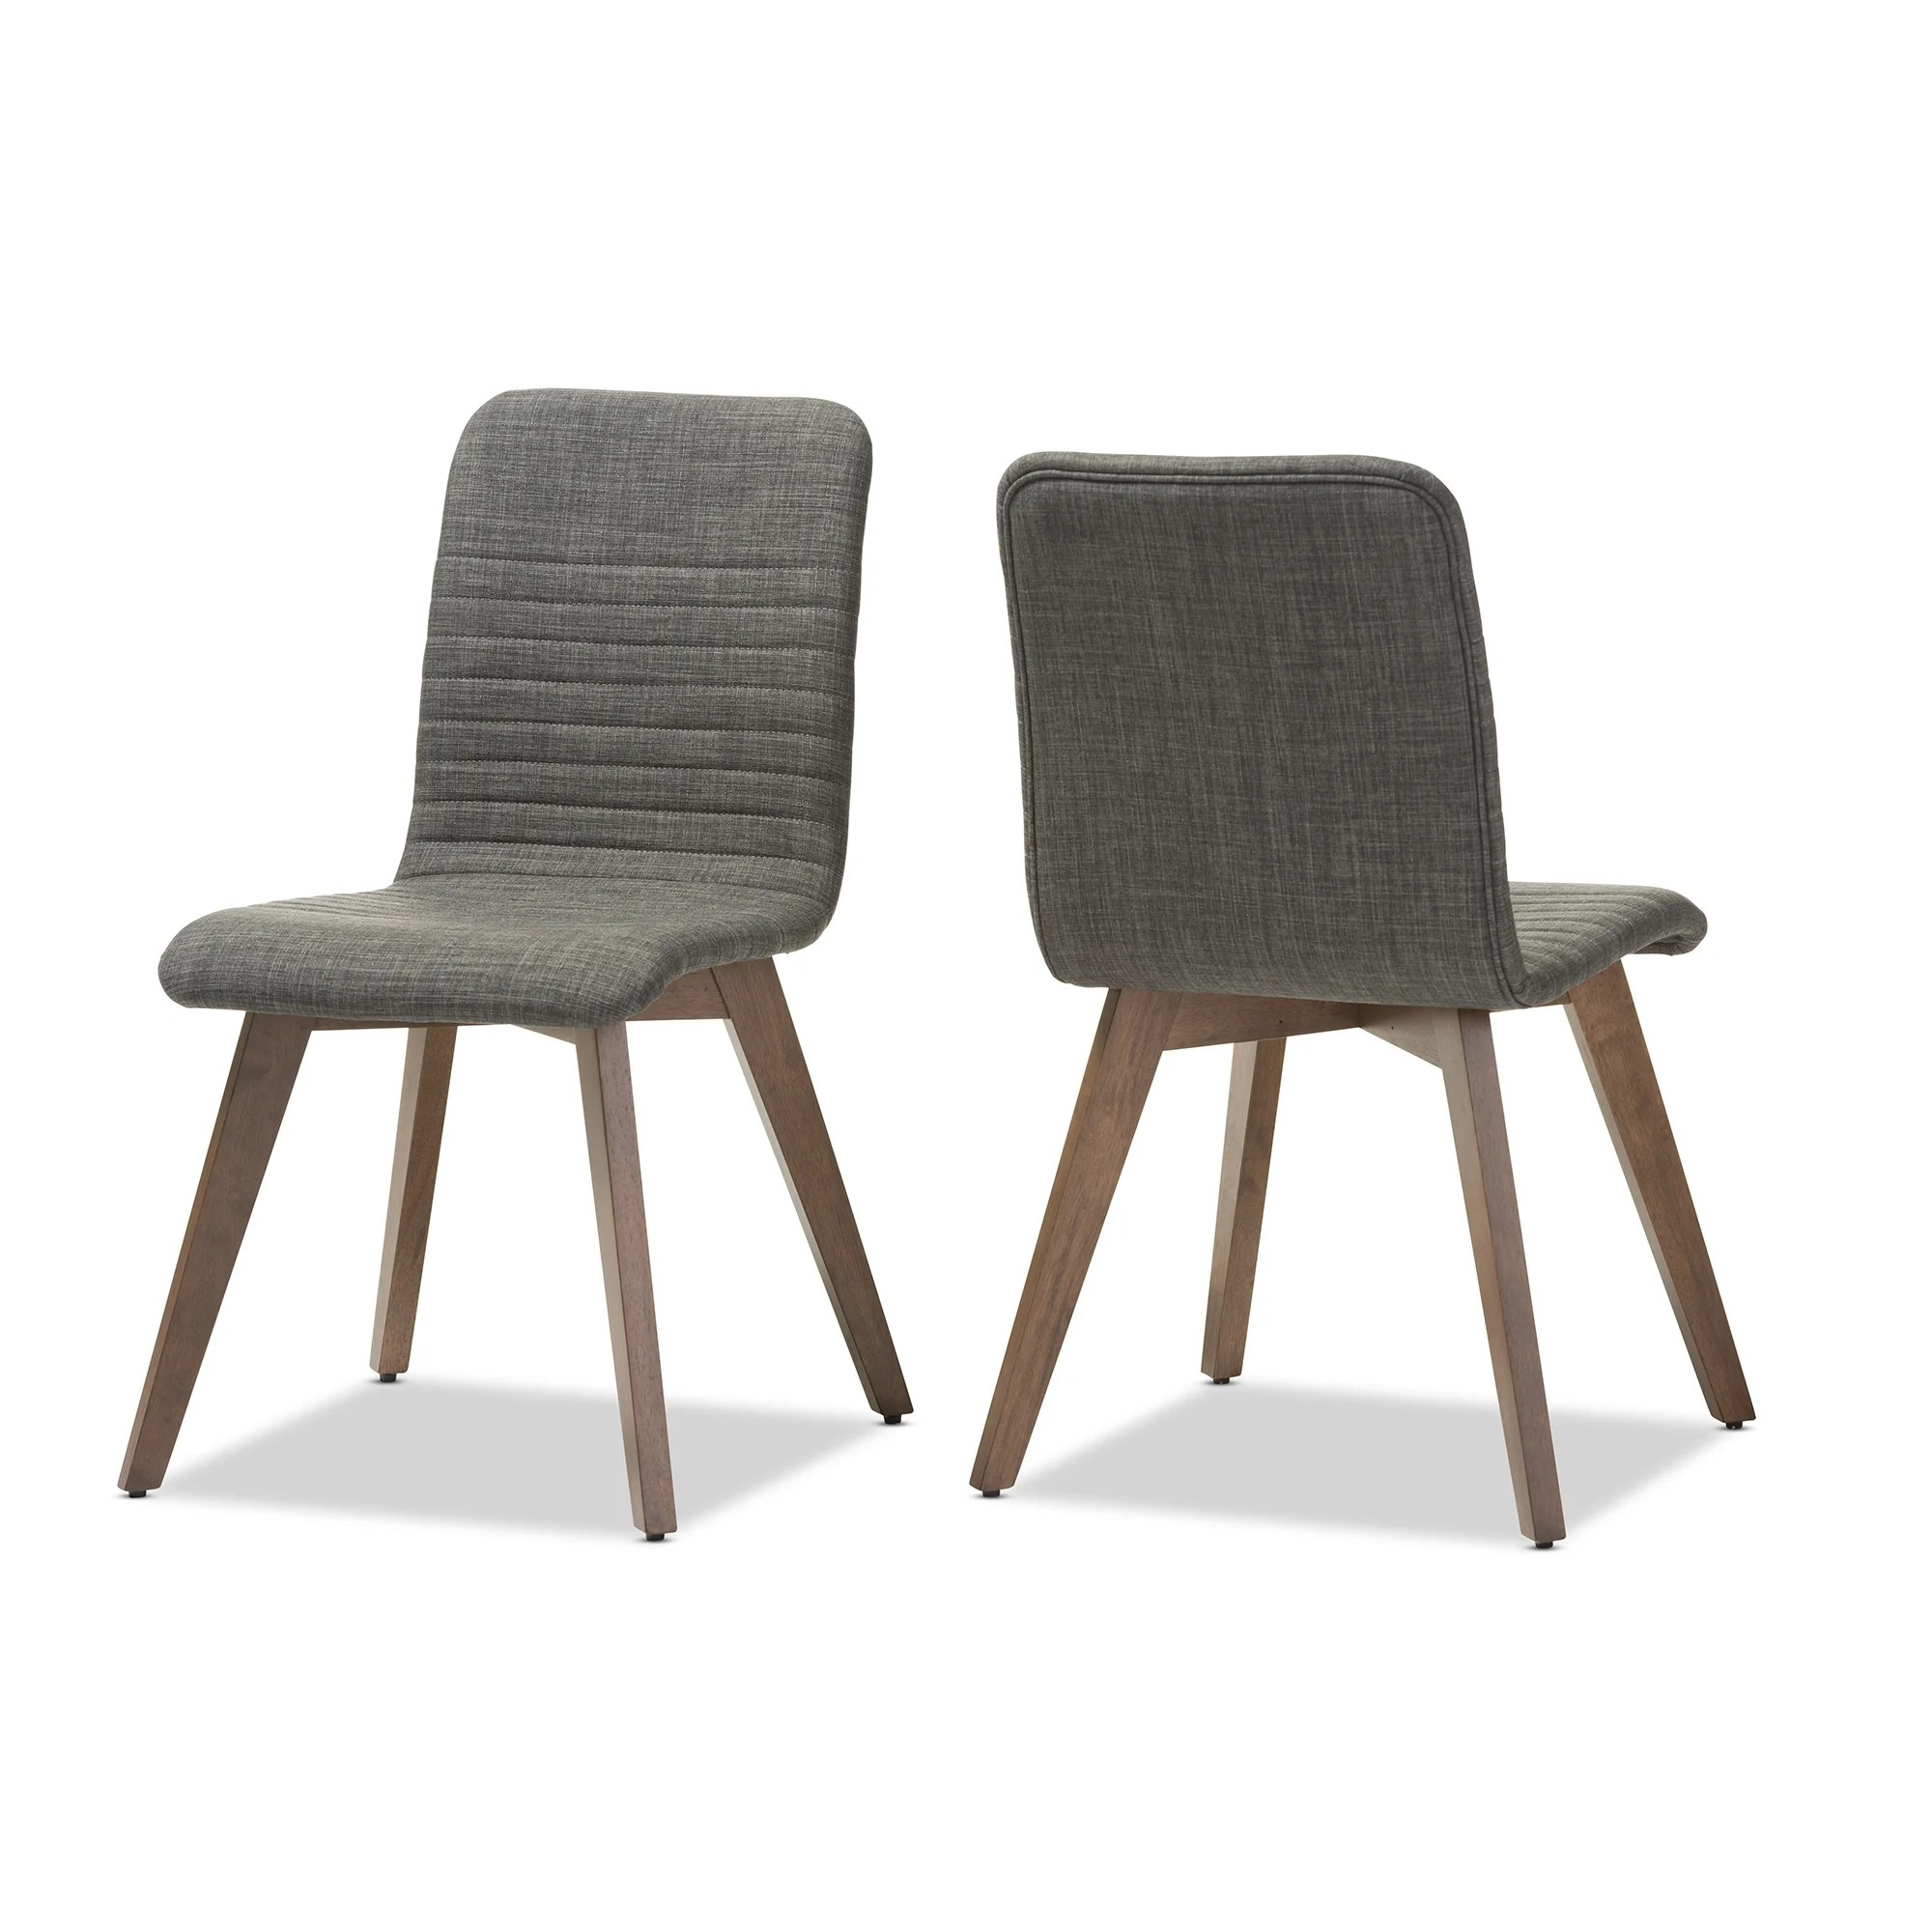 Studio Chairs Wholesale Interiors Baxton Studio Parsons Chair And Reviews